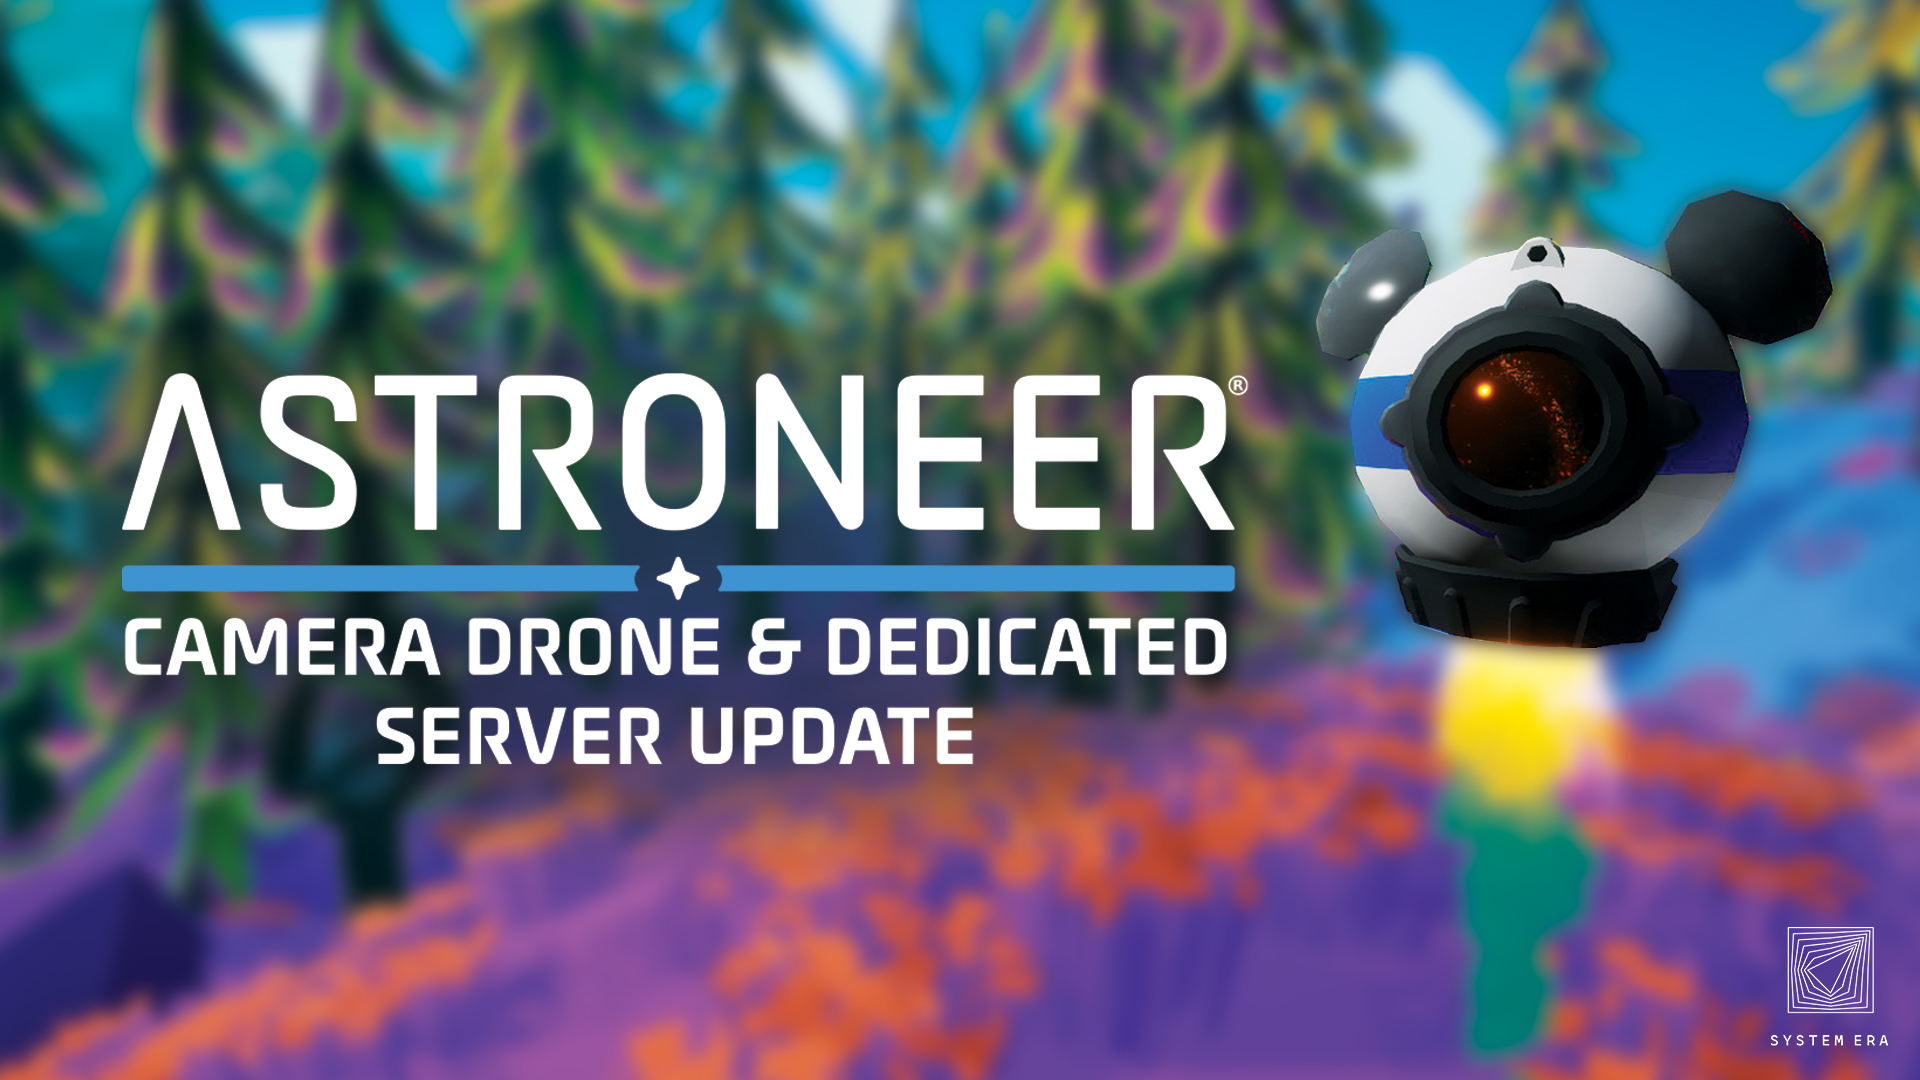 astroneer update 1.12 patch notes